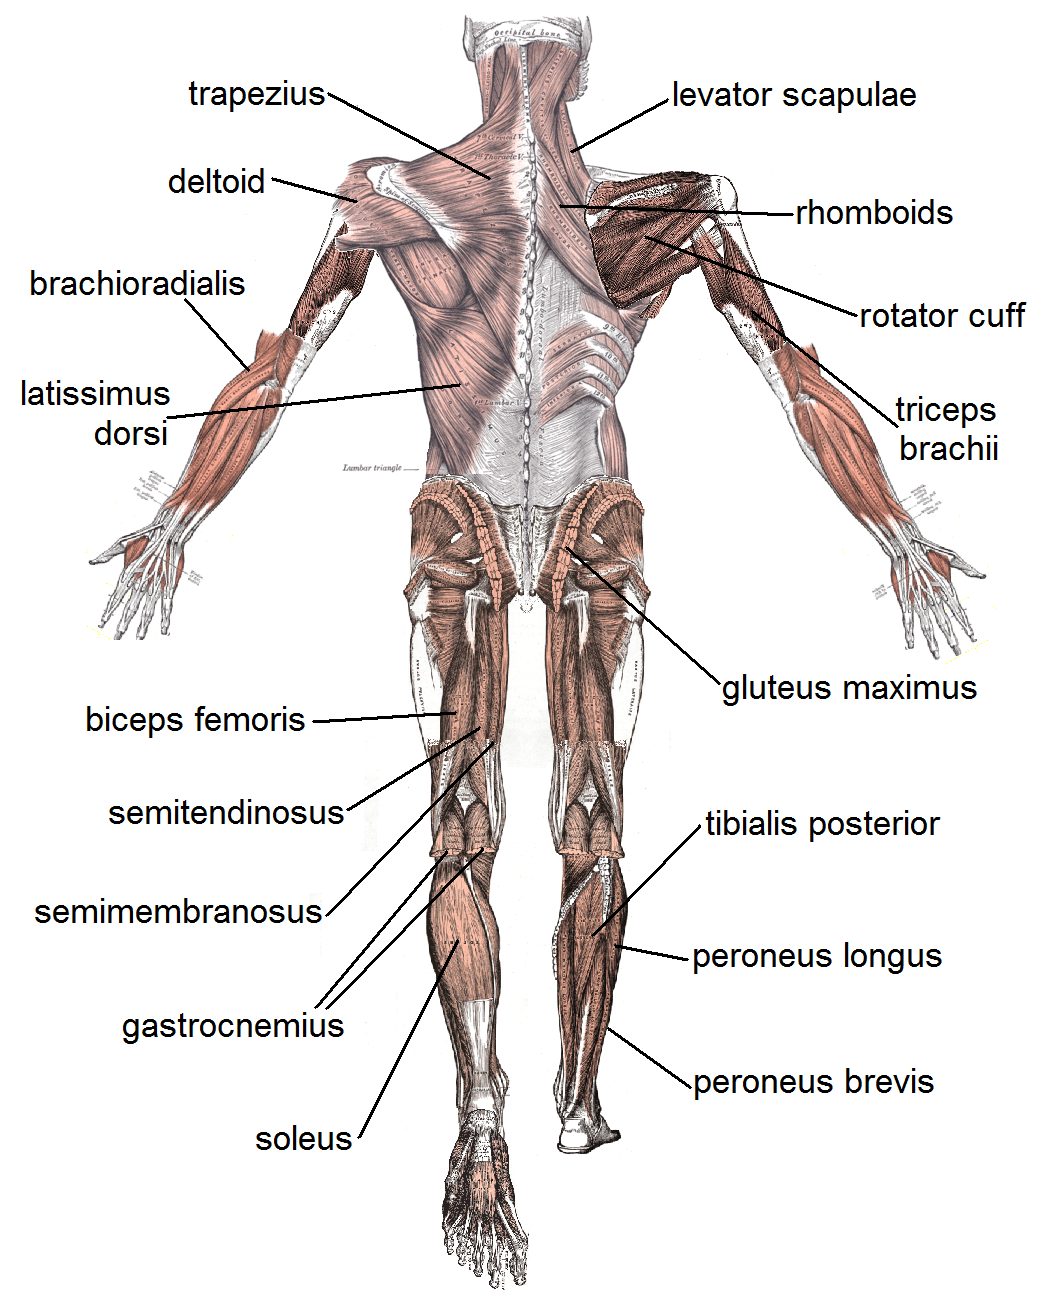 Muscle posterior labeled 4 human body muscles labeled biological muscles 4 human body muscles labeled muscle posterior labeled ccuart Image collections